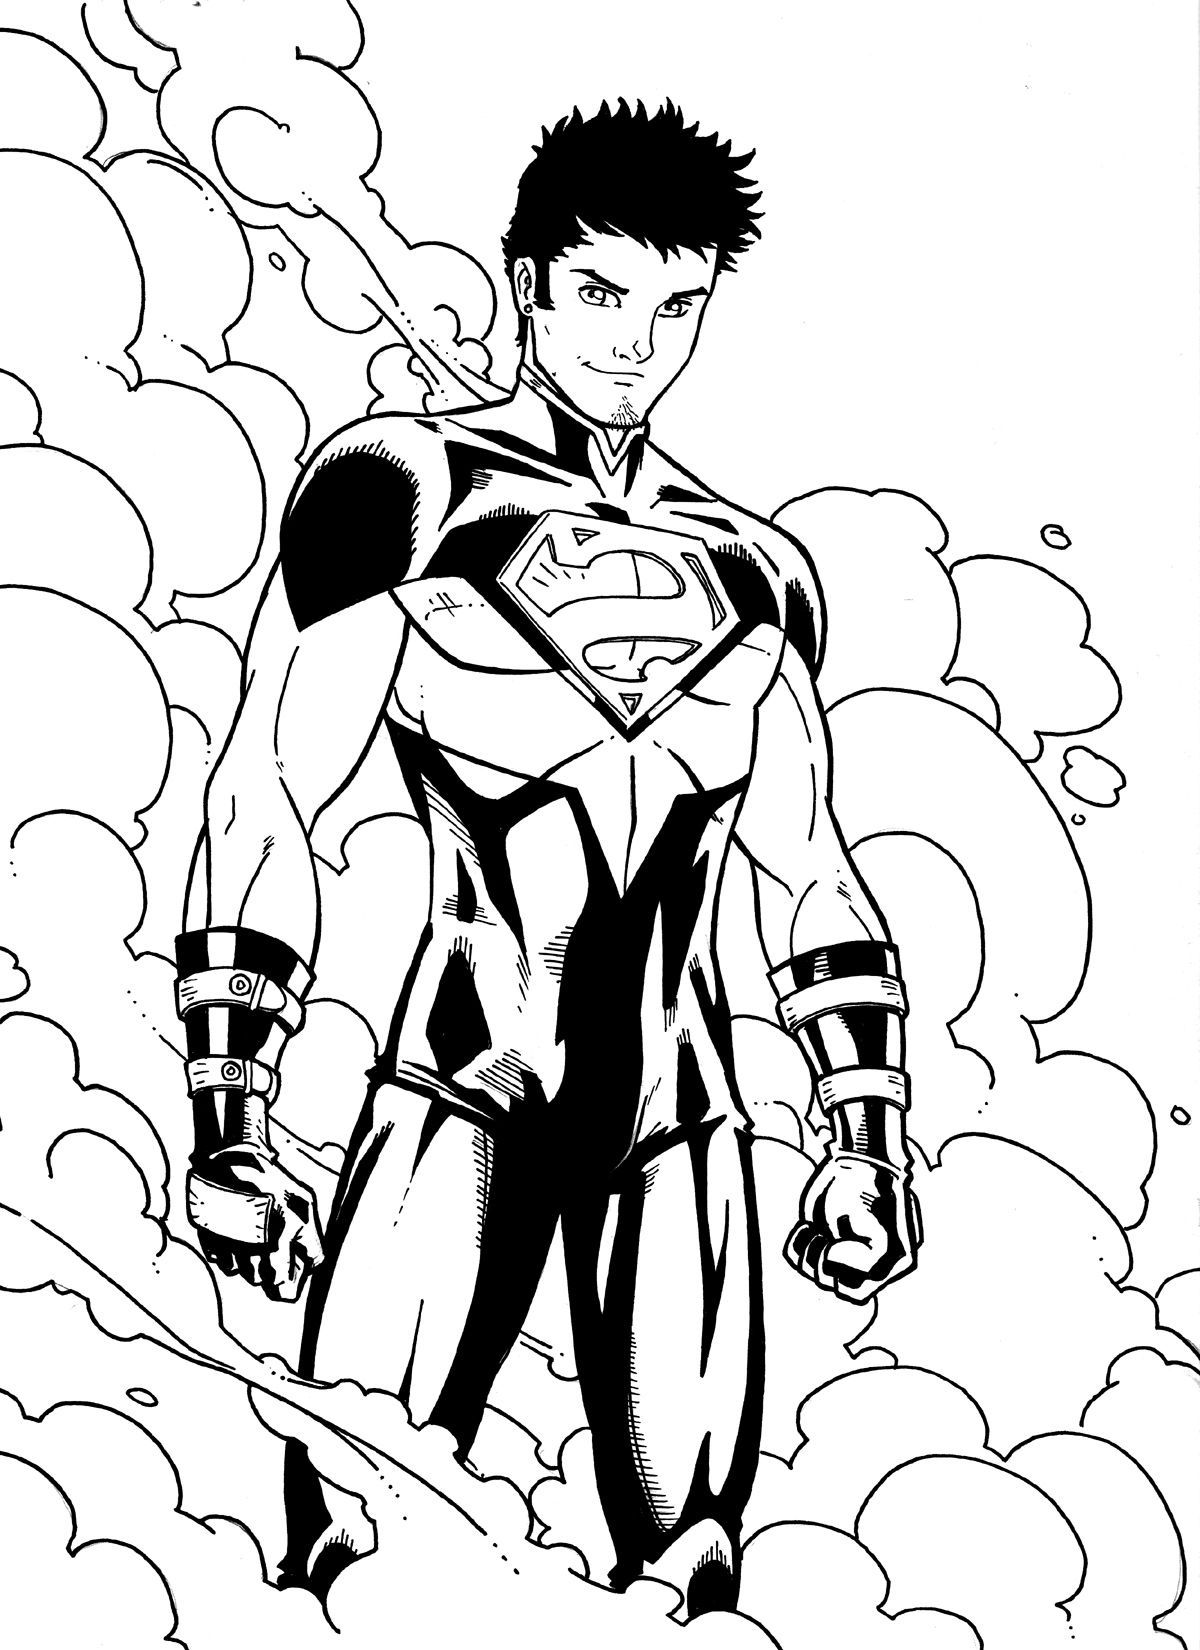 young justice colouring pages pin by susie petri on lineart young justice clip art pages colouring justice young